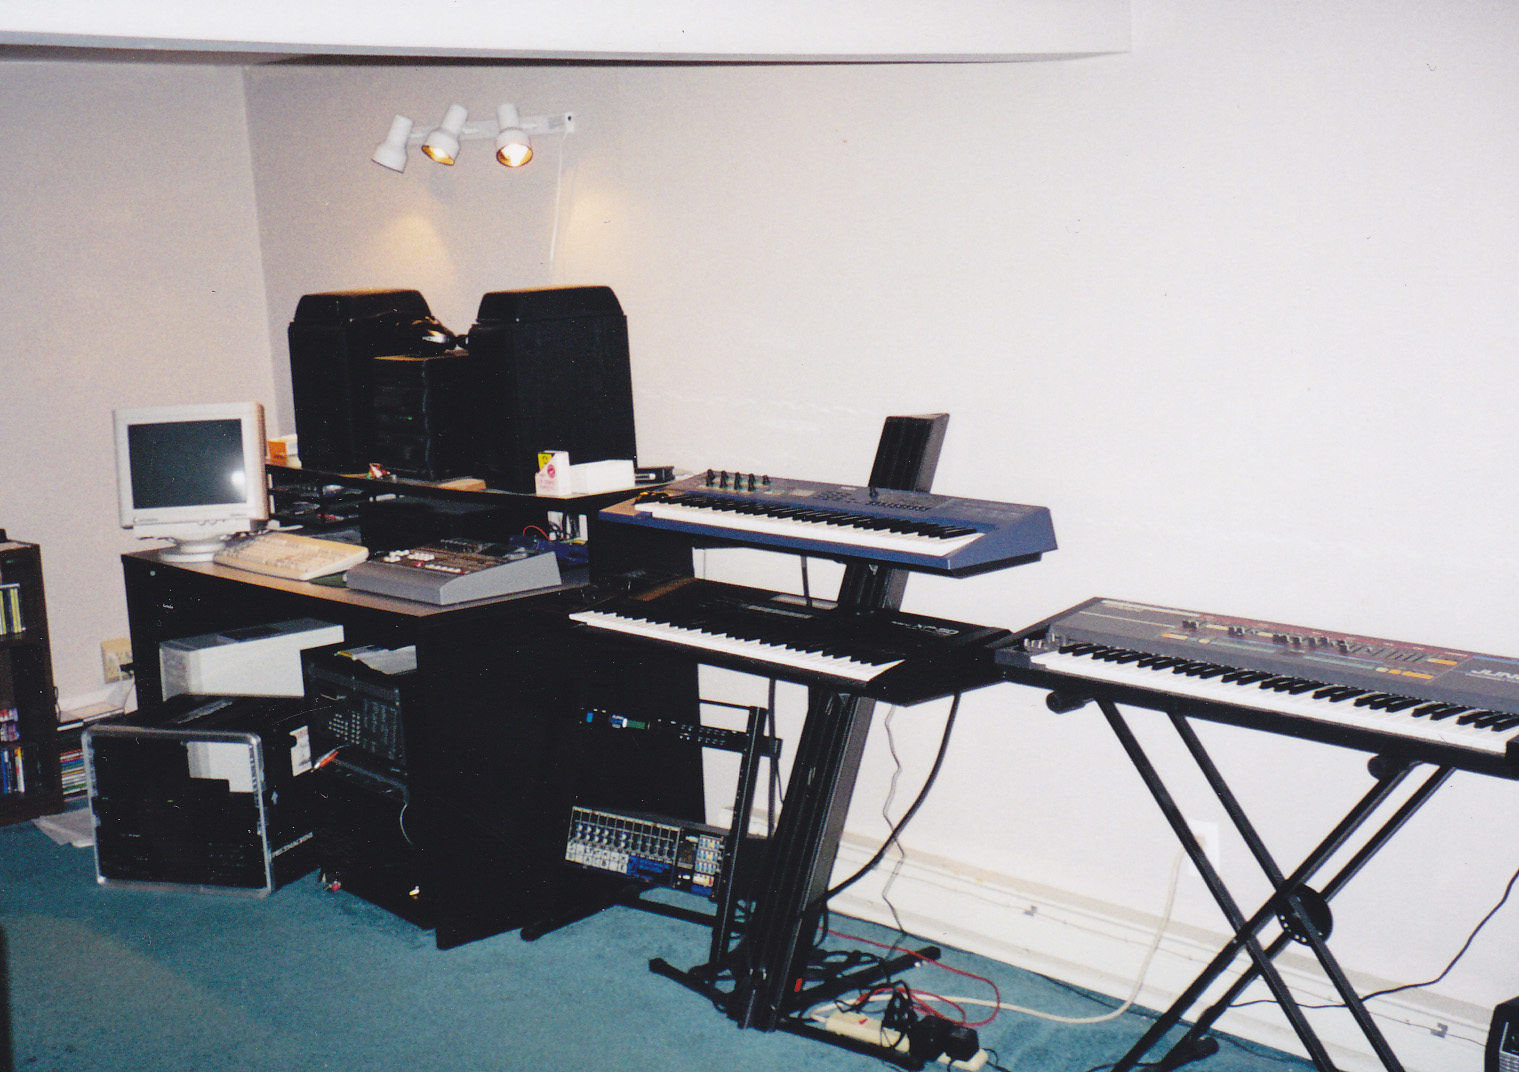 Humble beginnings: the Interface studio in 1999.